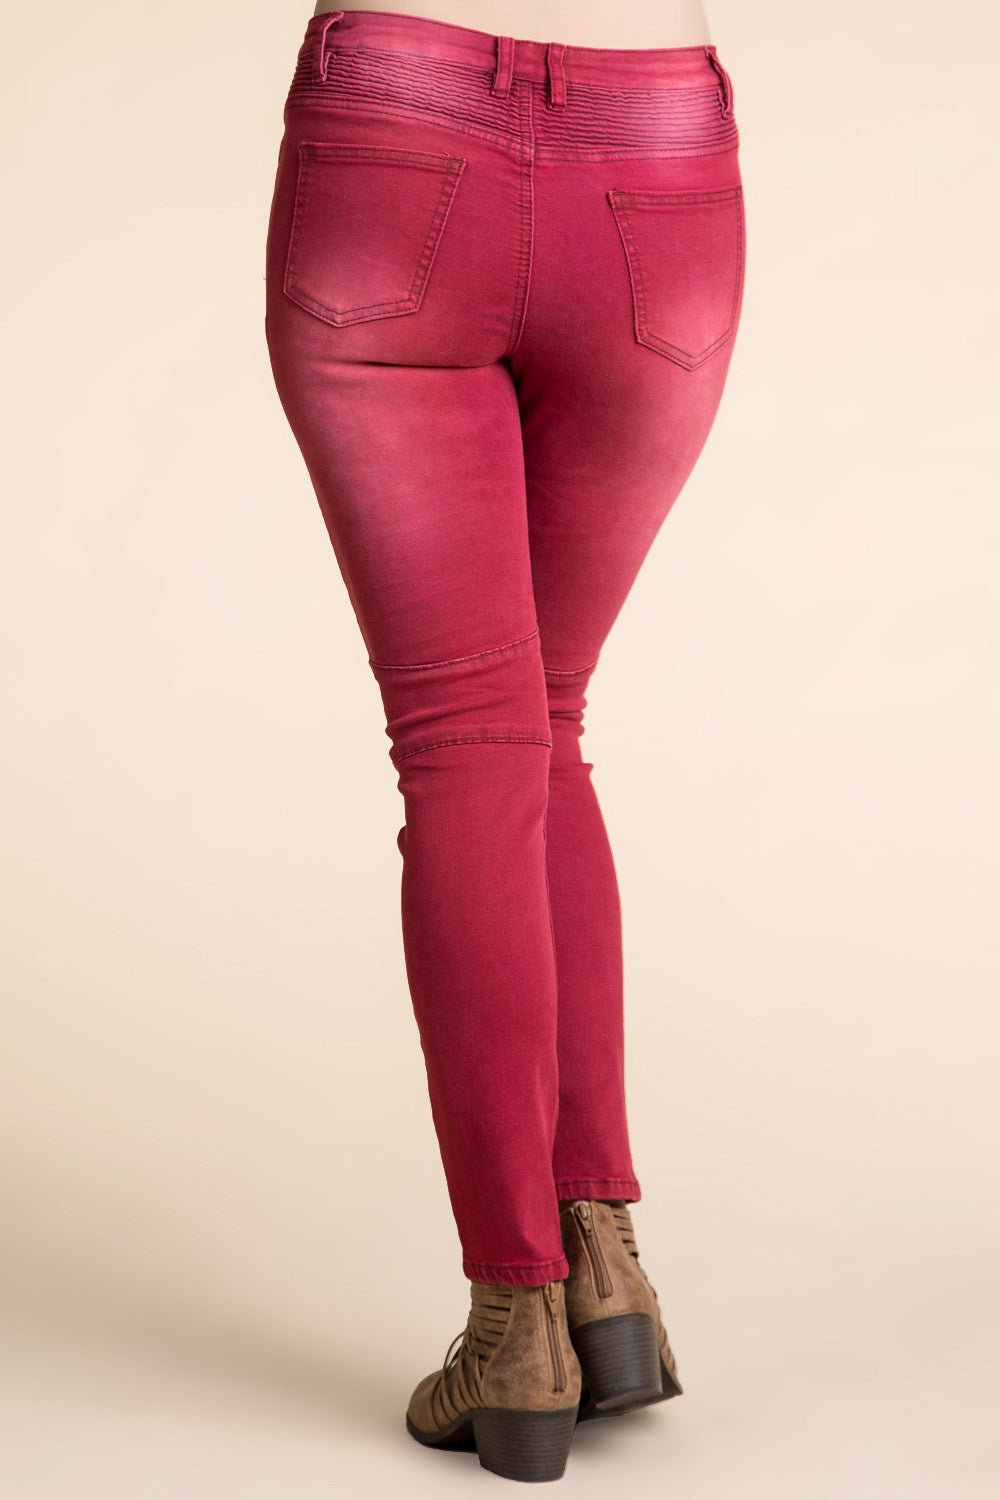 Type 3 Riders On The Storm Pants In Red wash